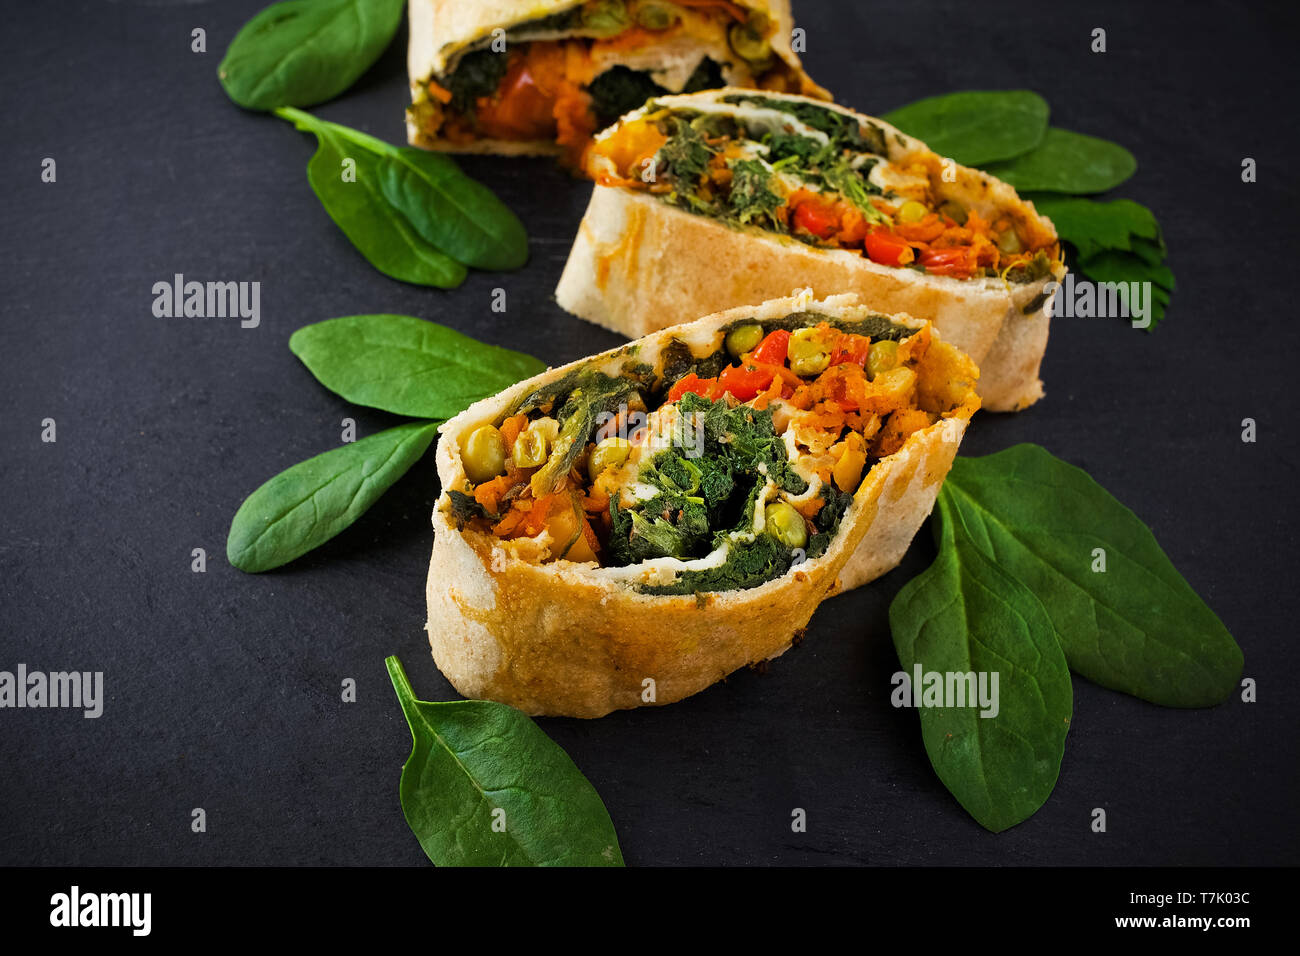 Vegetable savory strudel, with tomatoes and mushrooms on black background Stock Photo